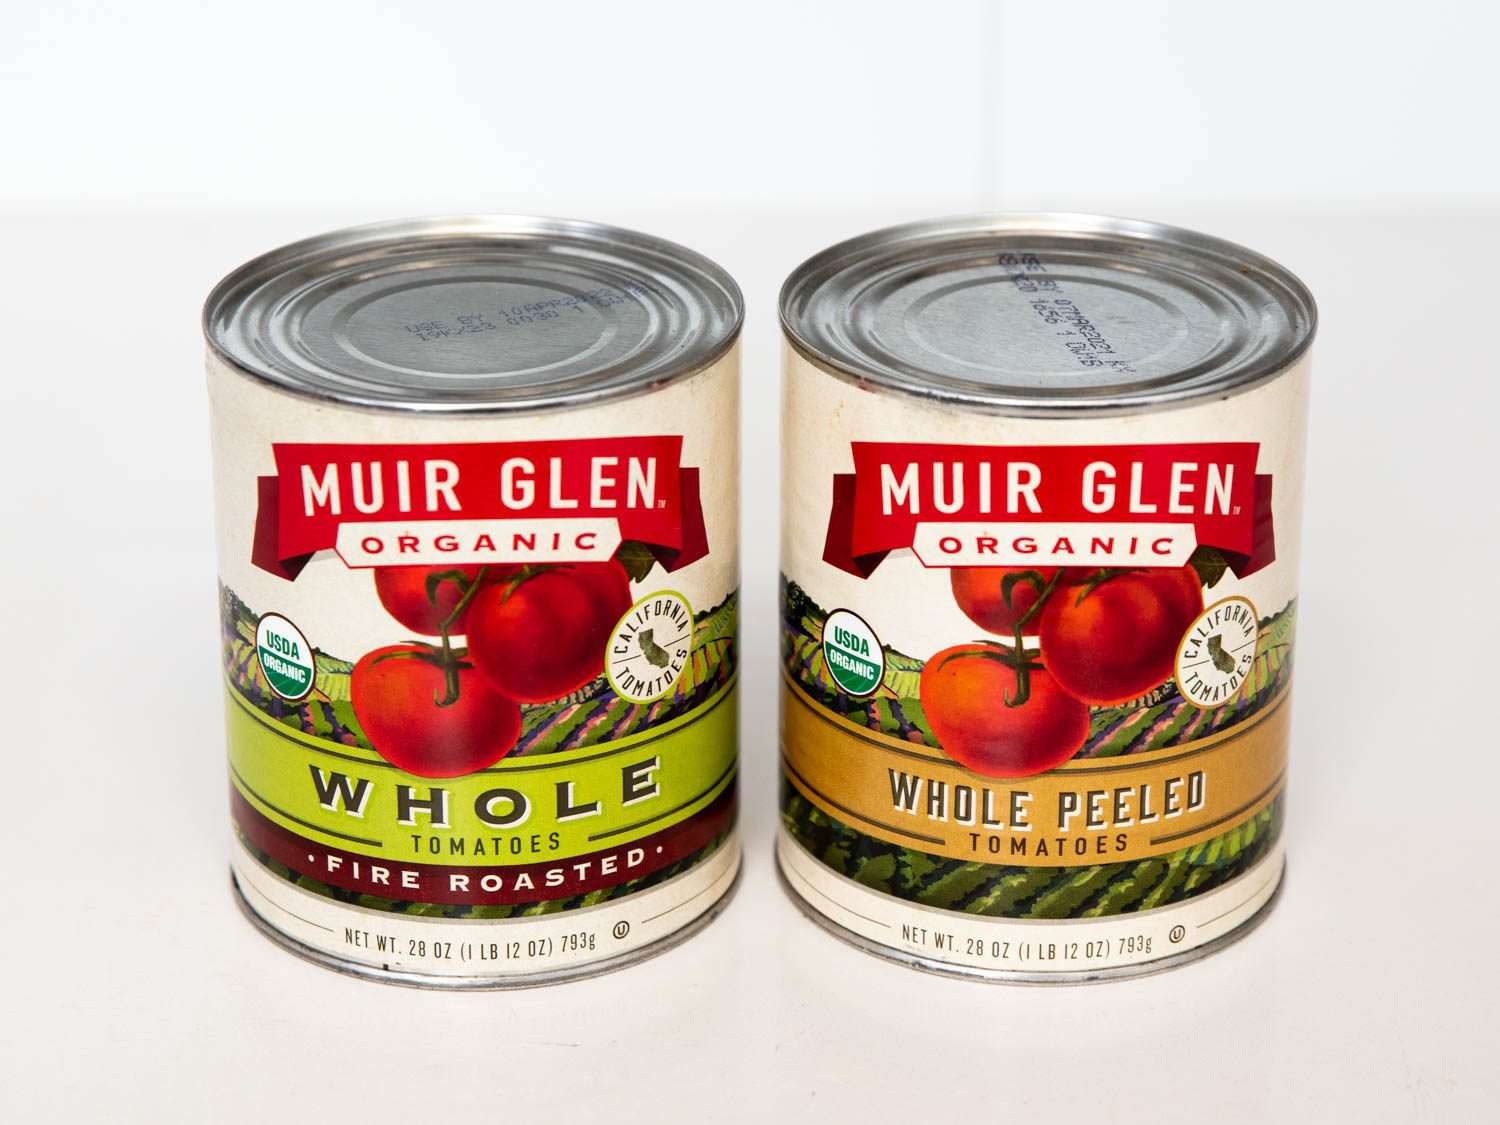 Side by side comparison of canned fire-roasted whole tomatoes and plain canned whole tomatoes